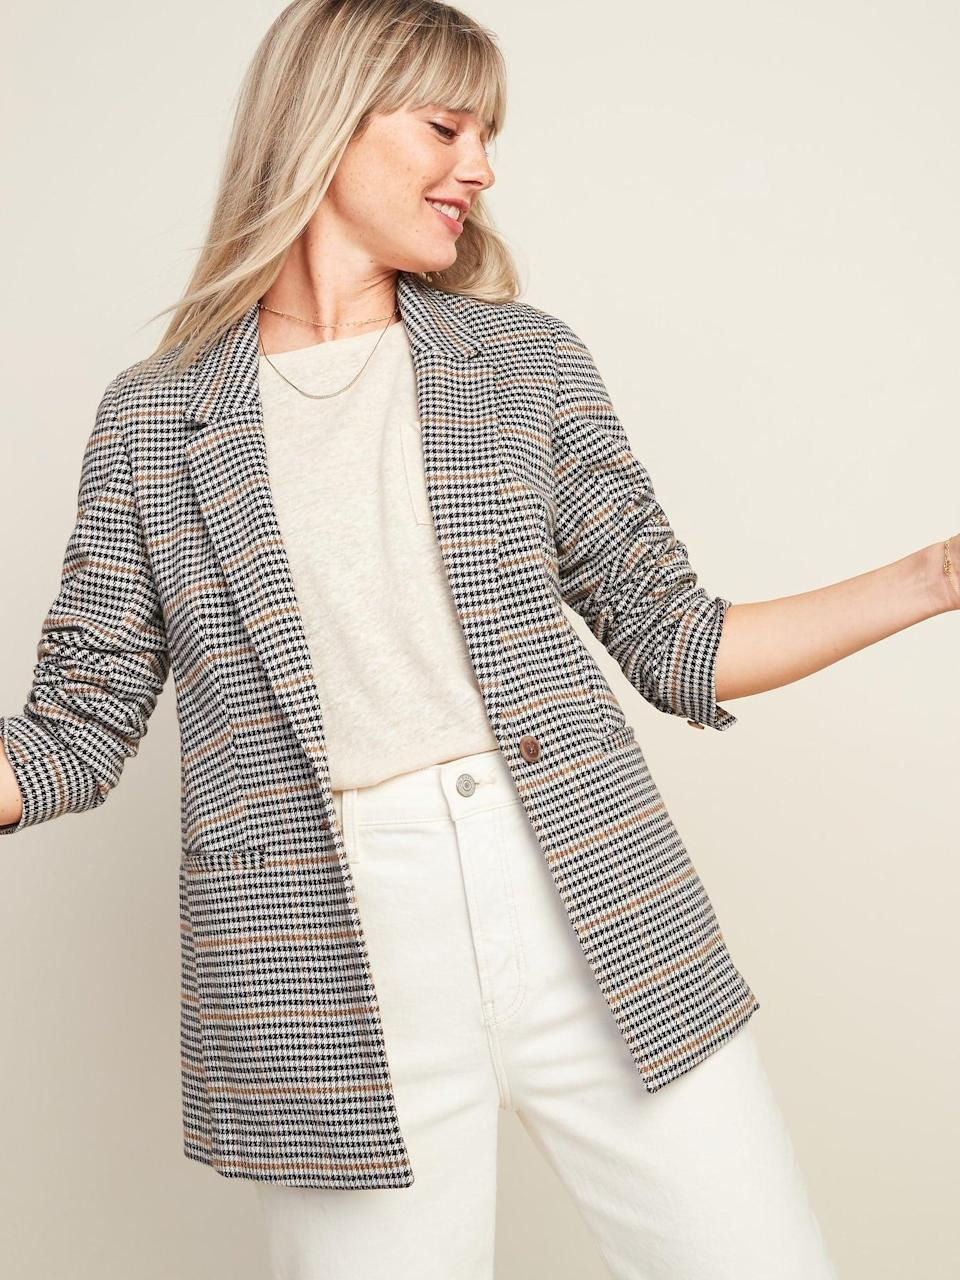 <p>The <span>Oversized Patterned Blazer</span> ($36, originally $50) is incredibly soft and feels more like heavy flannel than a stiff blazer.</p>